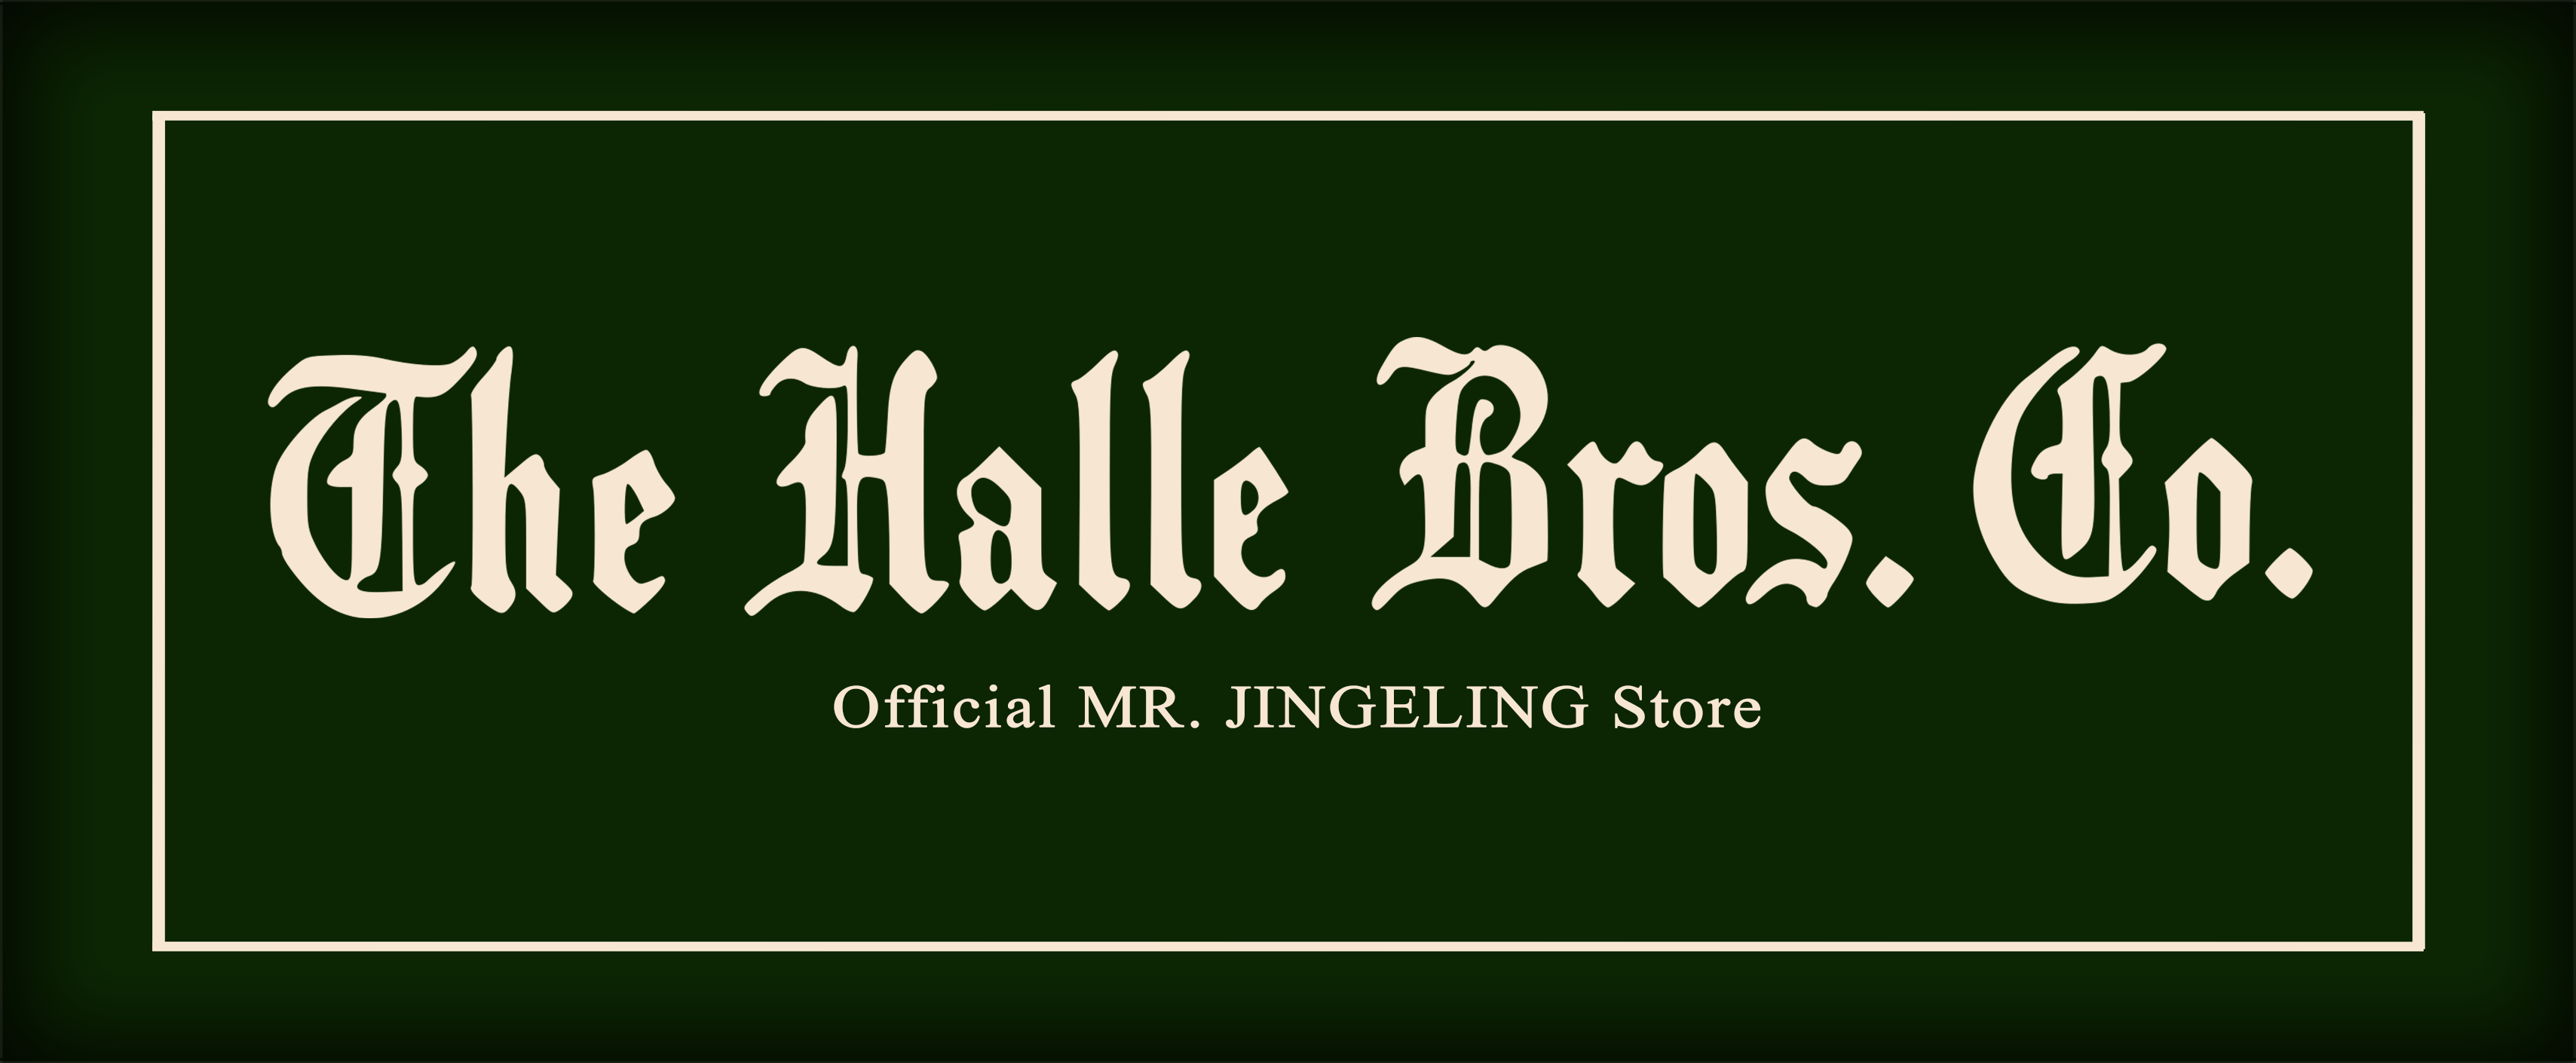 Shop Mr. Jingeling Merchandise at The Halle Bros. Co. Store